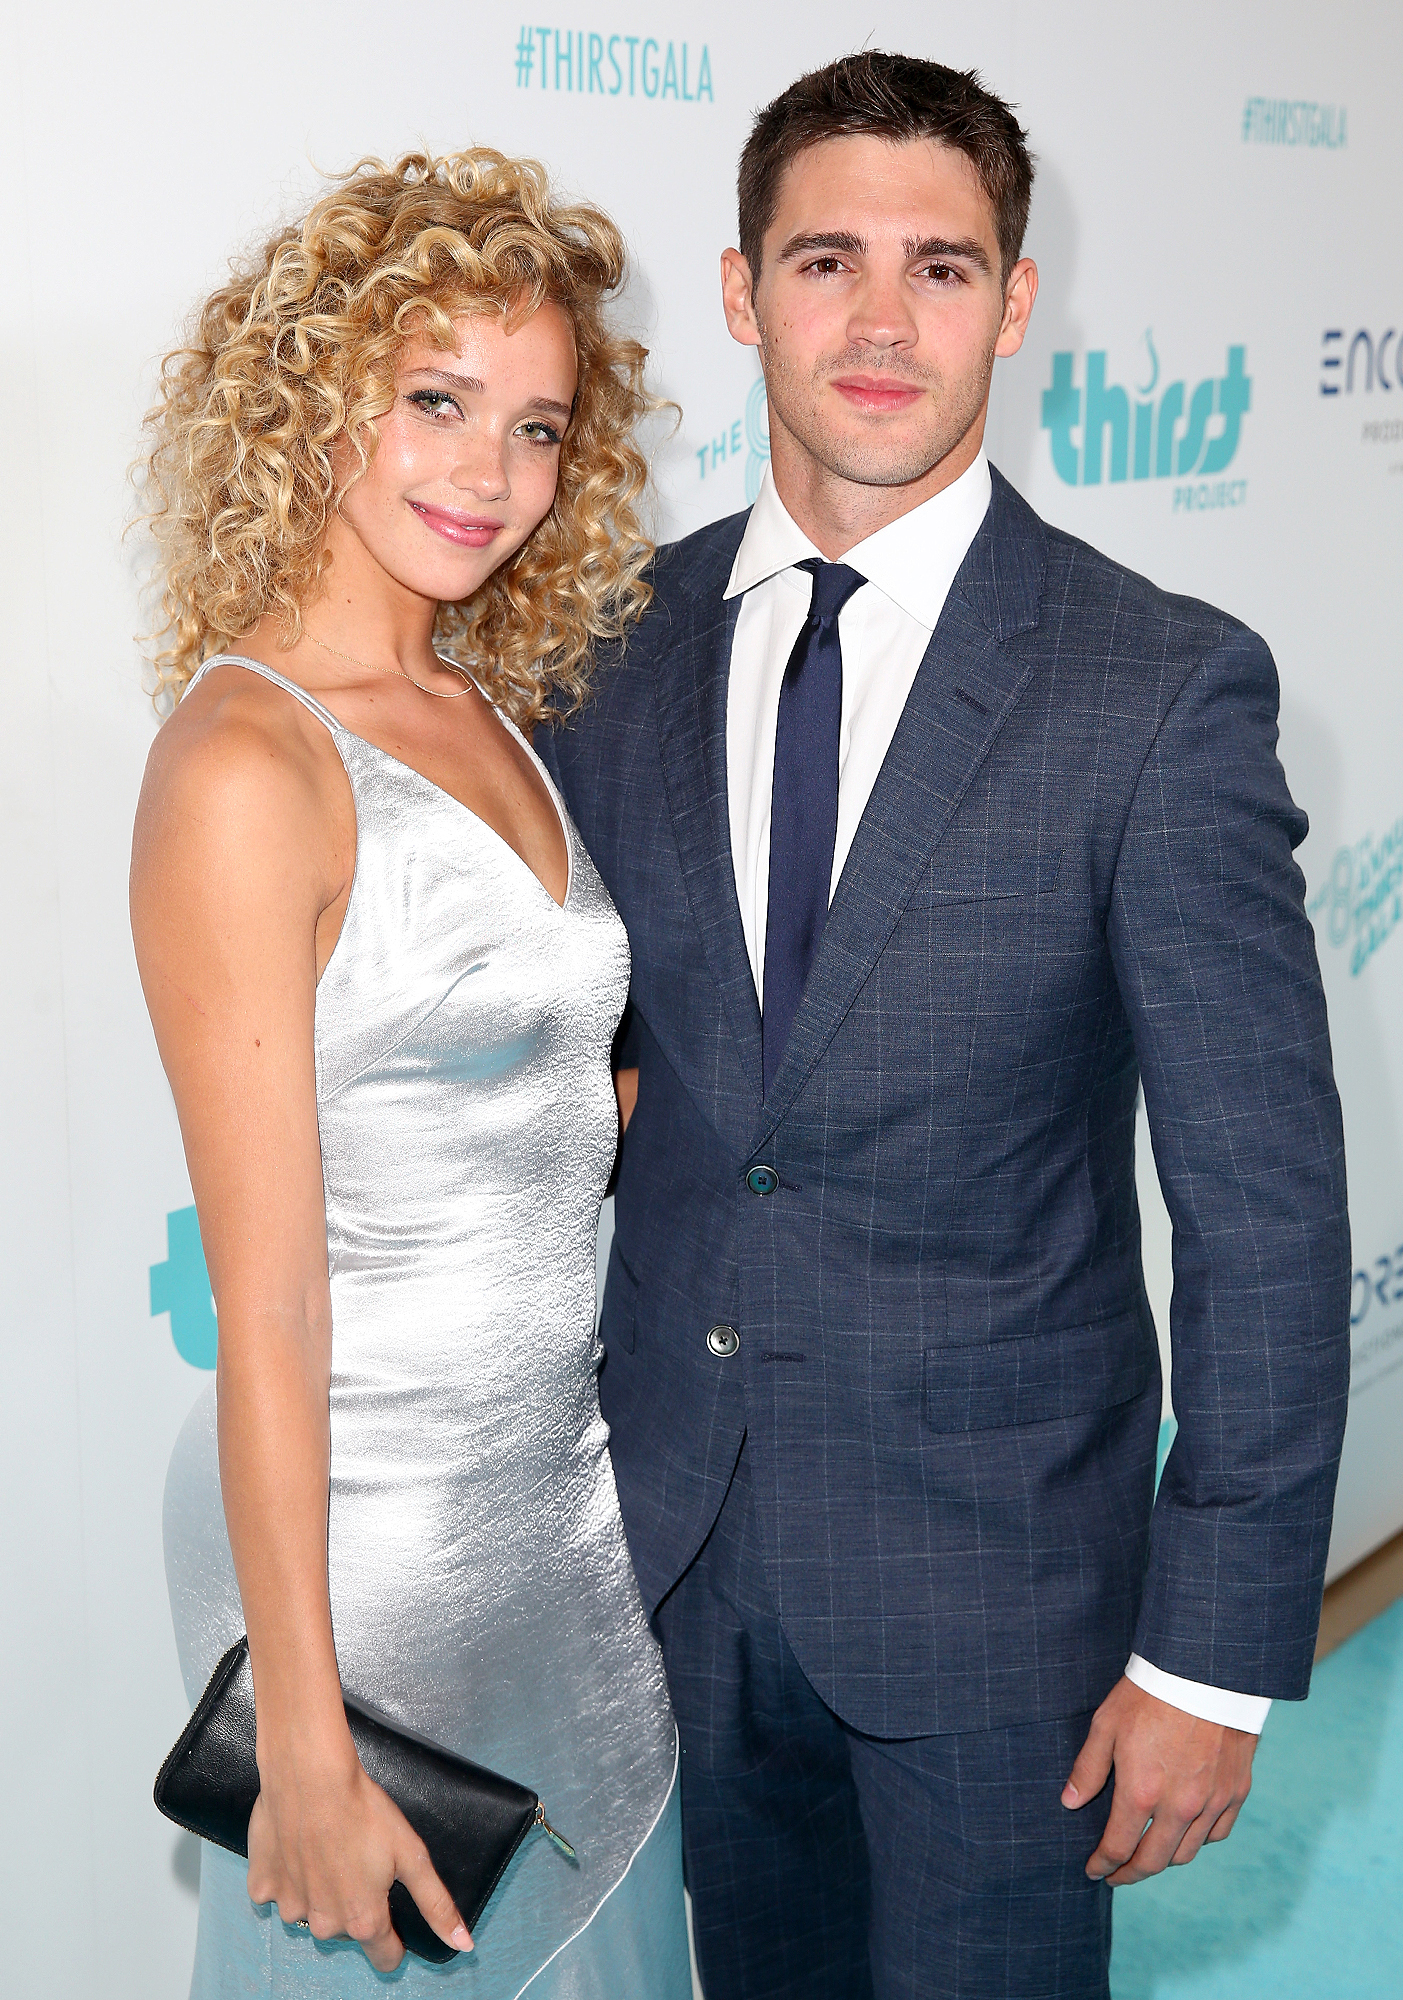 Thirst Project's 8th Annual thirst Gala - Arrivals